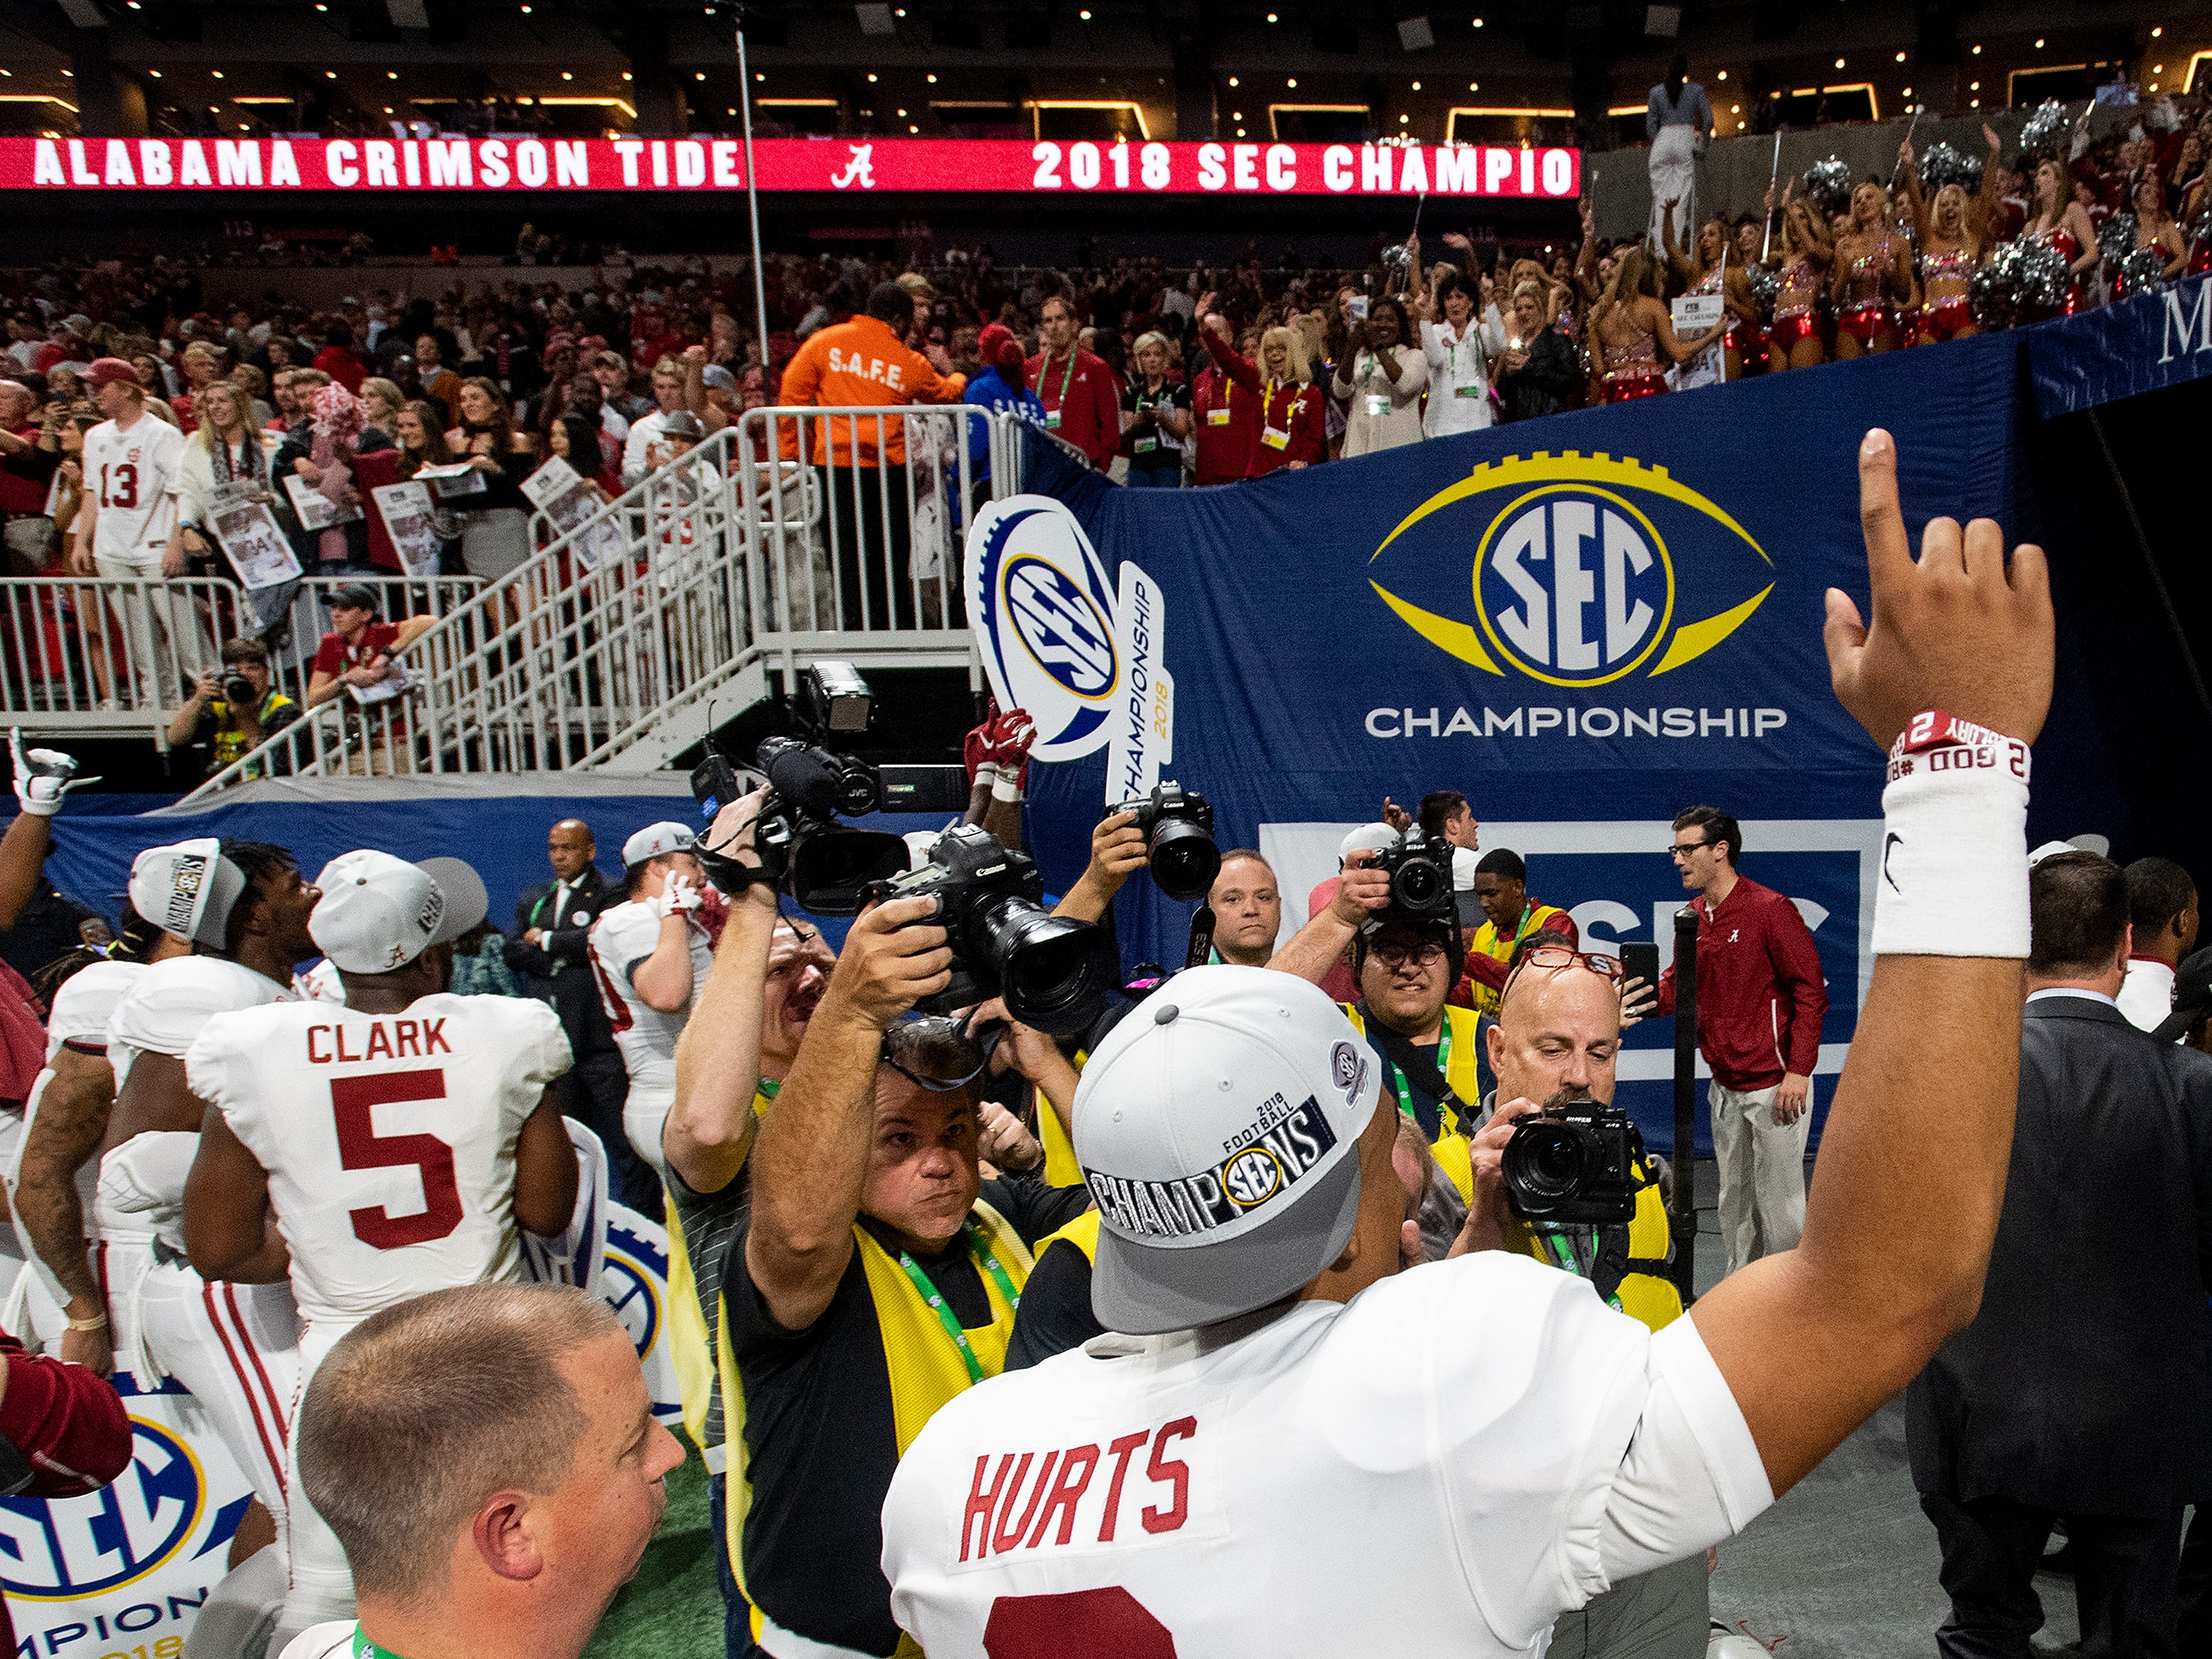 Alabama quarterback Jalen Hurts (2) leaves the field after defeating Georgia in the SEC Championship Game at Mercedes Benz Stadium in Atlanta, Ga., on Saturday December 1, 2018.